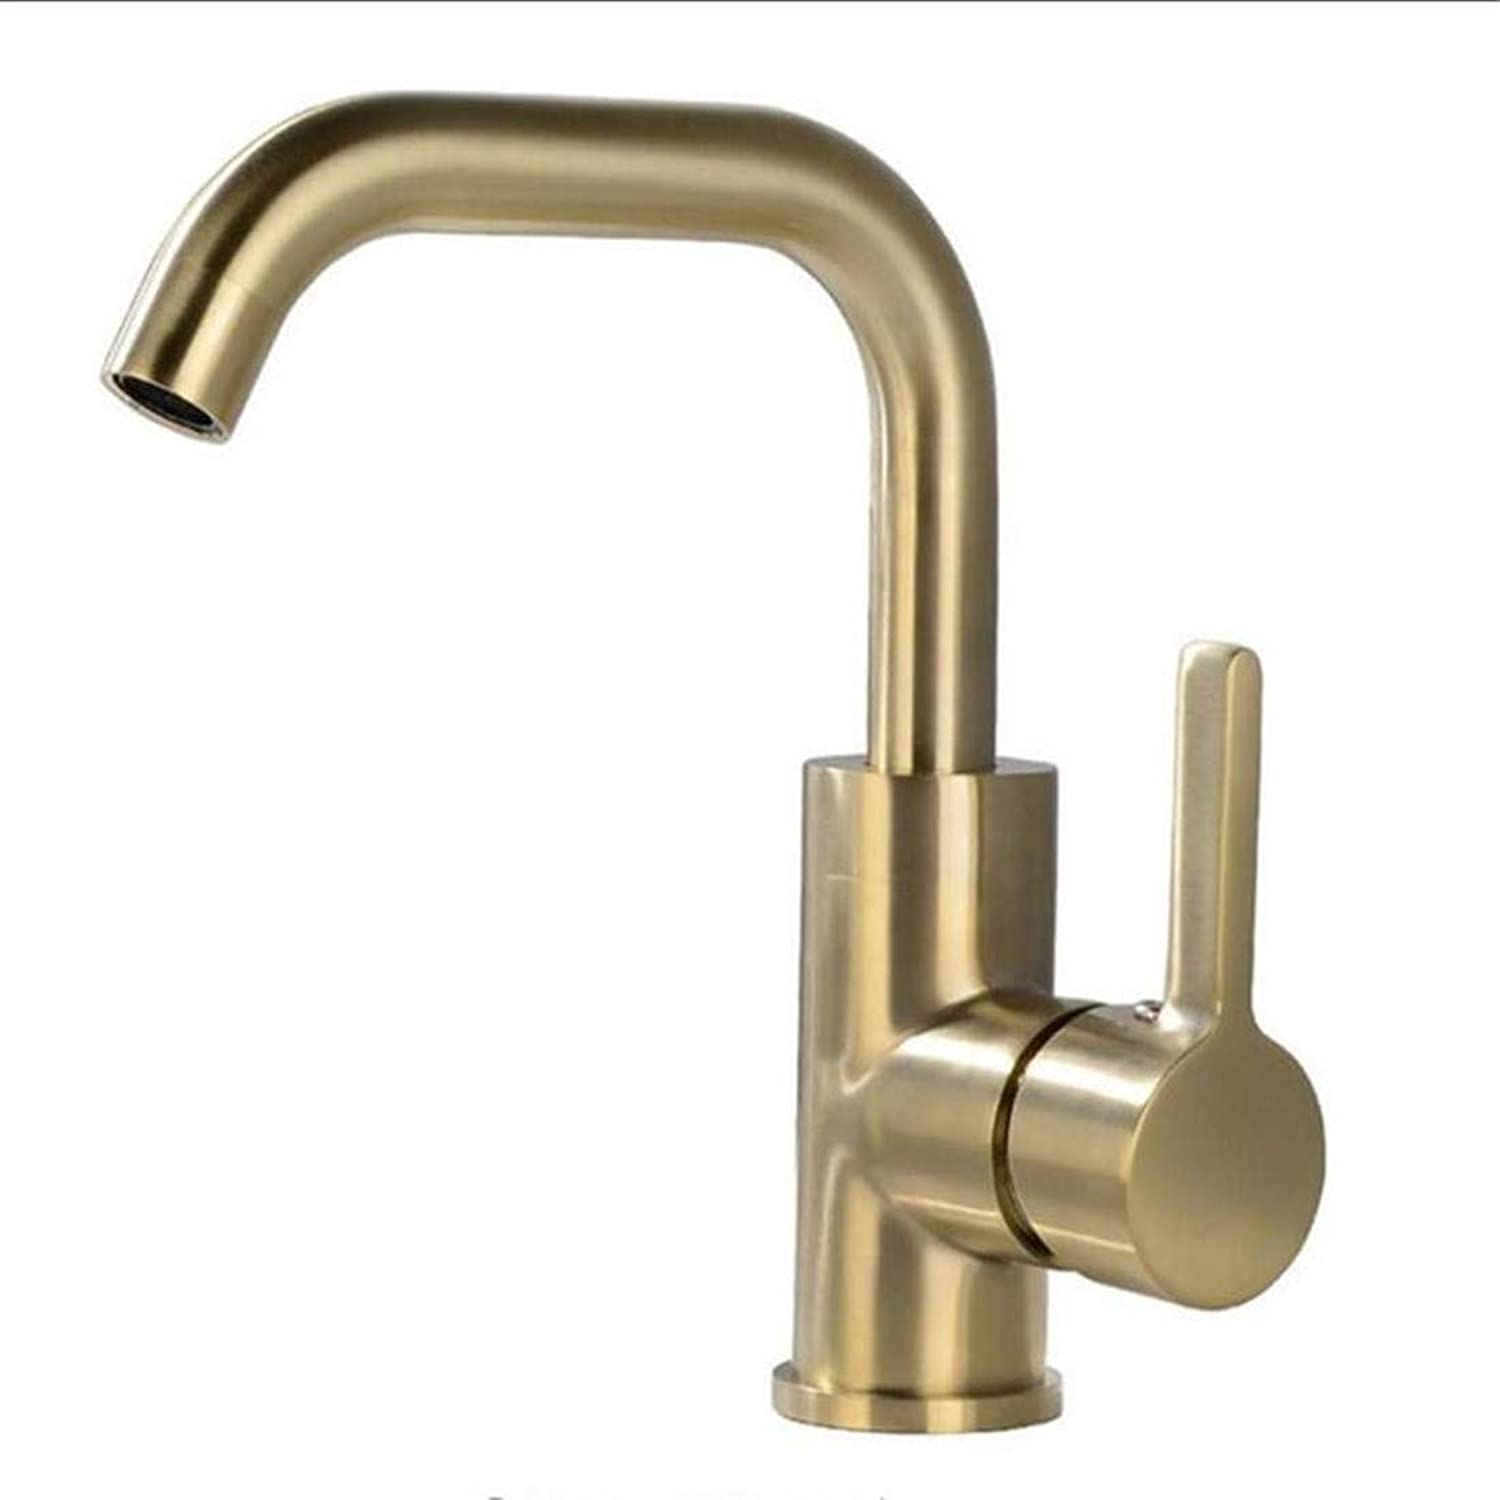 High Quality Kitchen Brass Stainless Steel Solid Brass Basin Faucet Cold and Hot Water Mixer Single Handle Tap Chrome Black Brushed gold Sink Taps